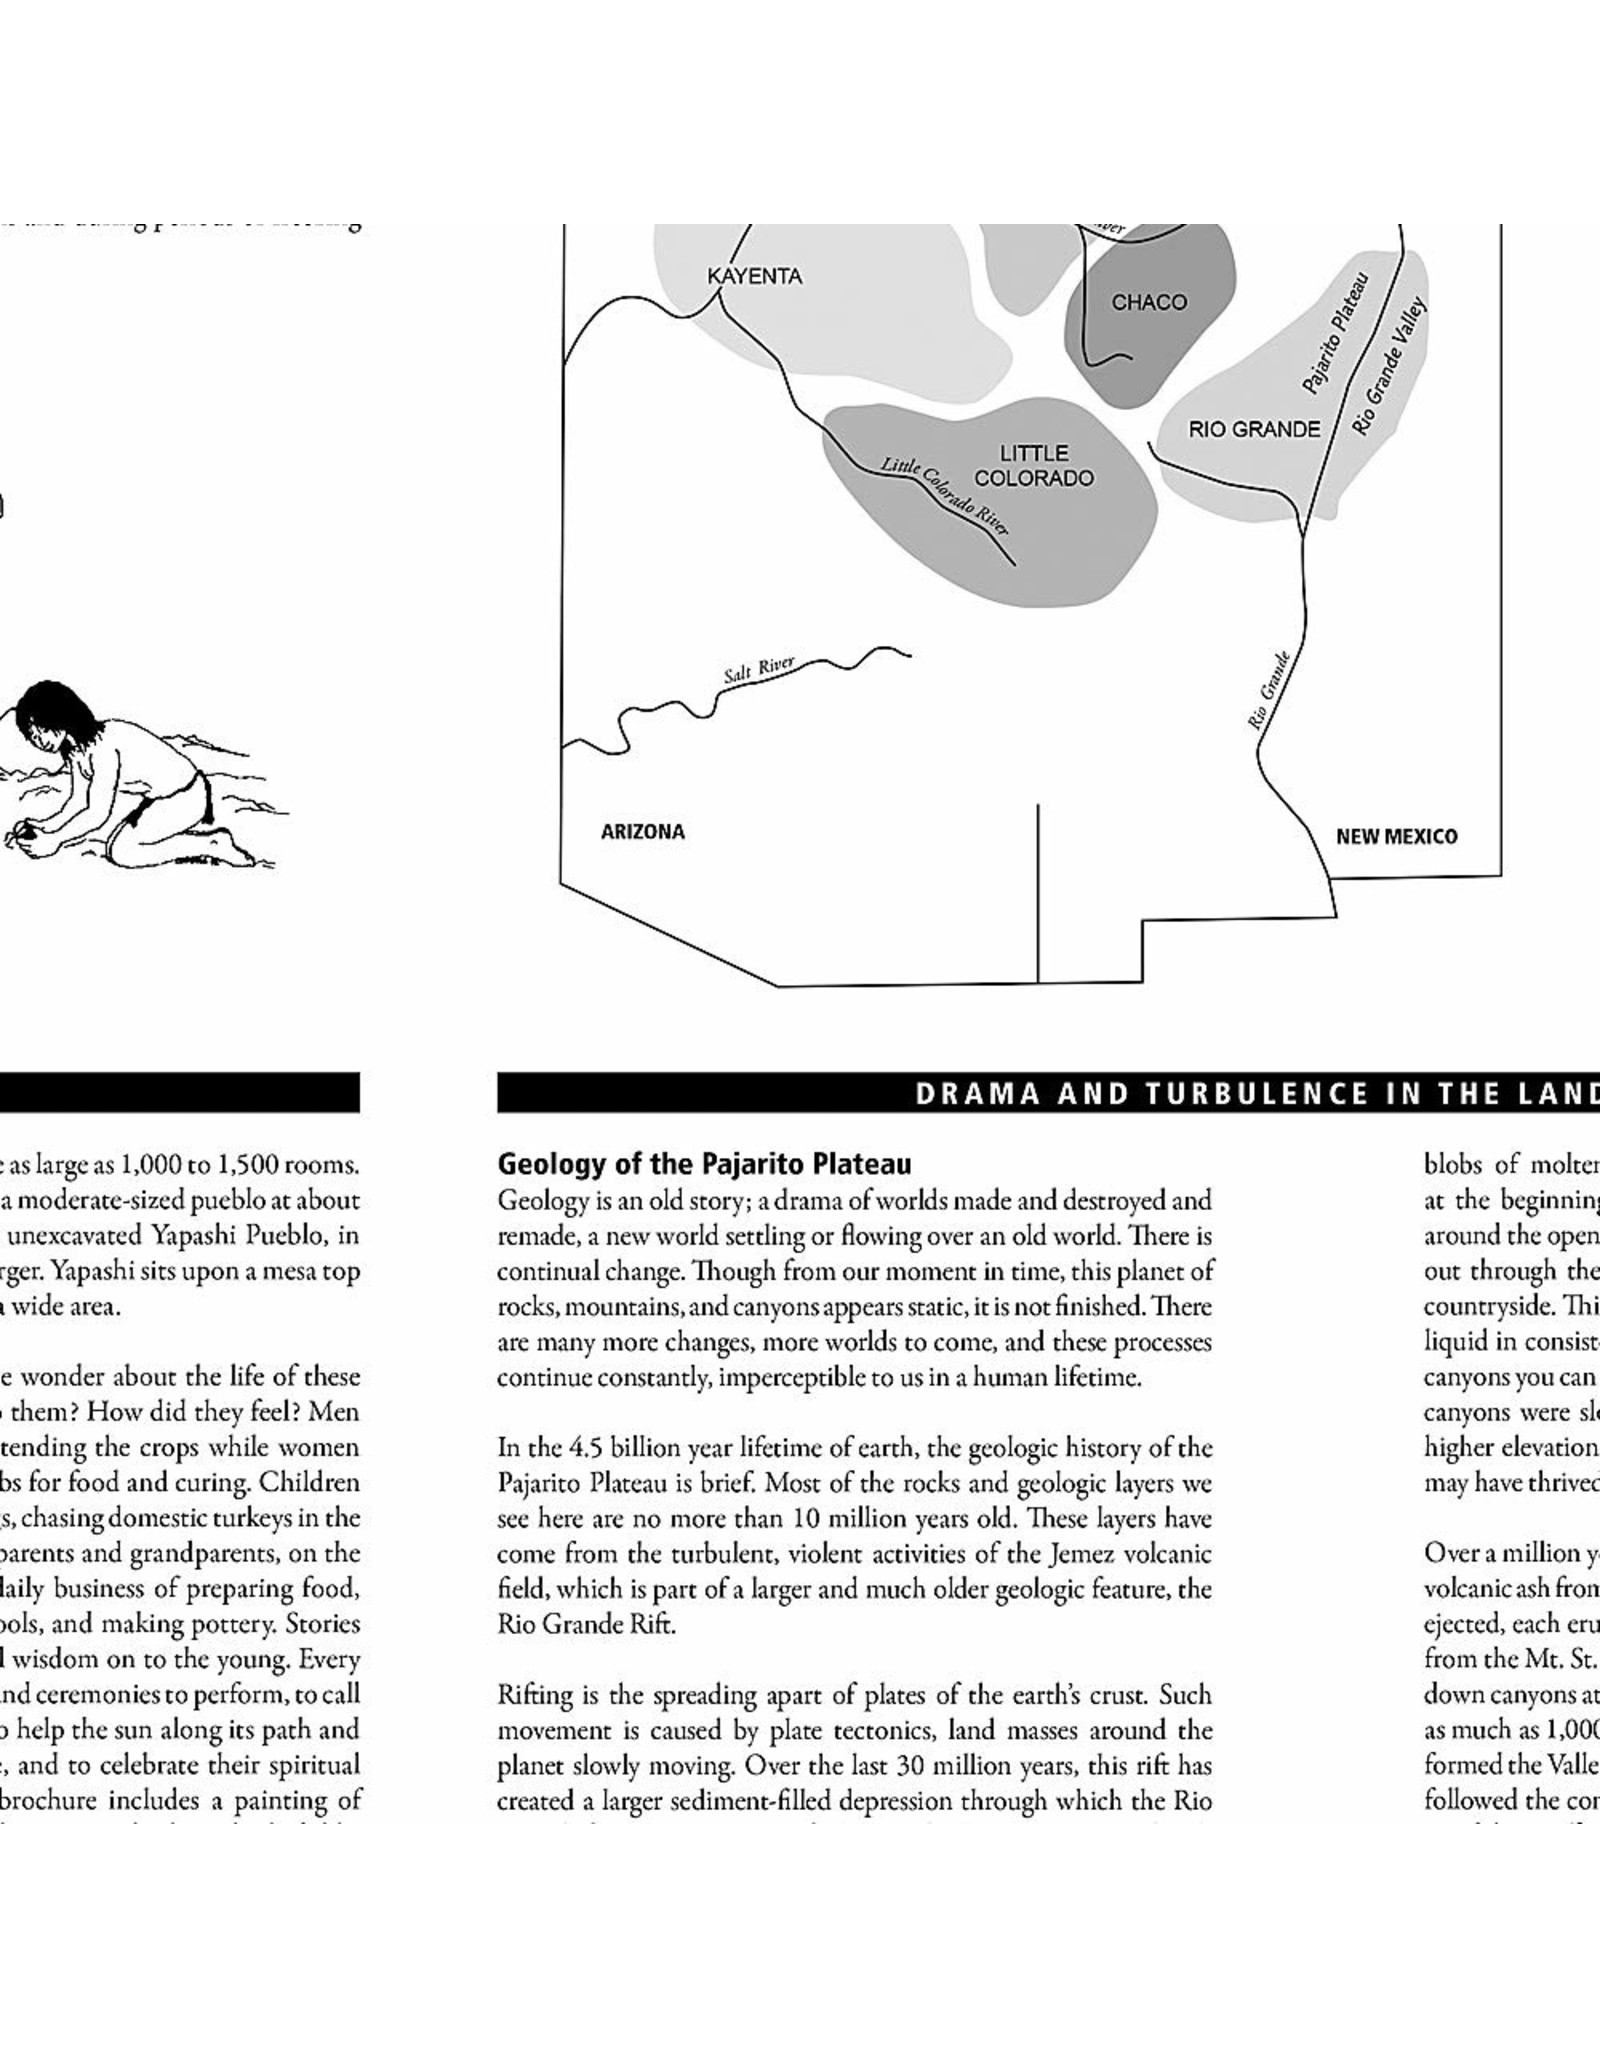 Bandelier National Monument (National Geographic Trails Illustrated Map, 209) Map – Illustrated